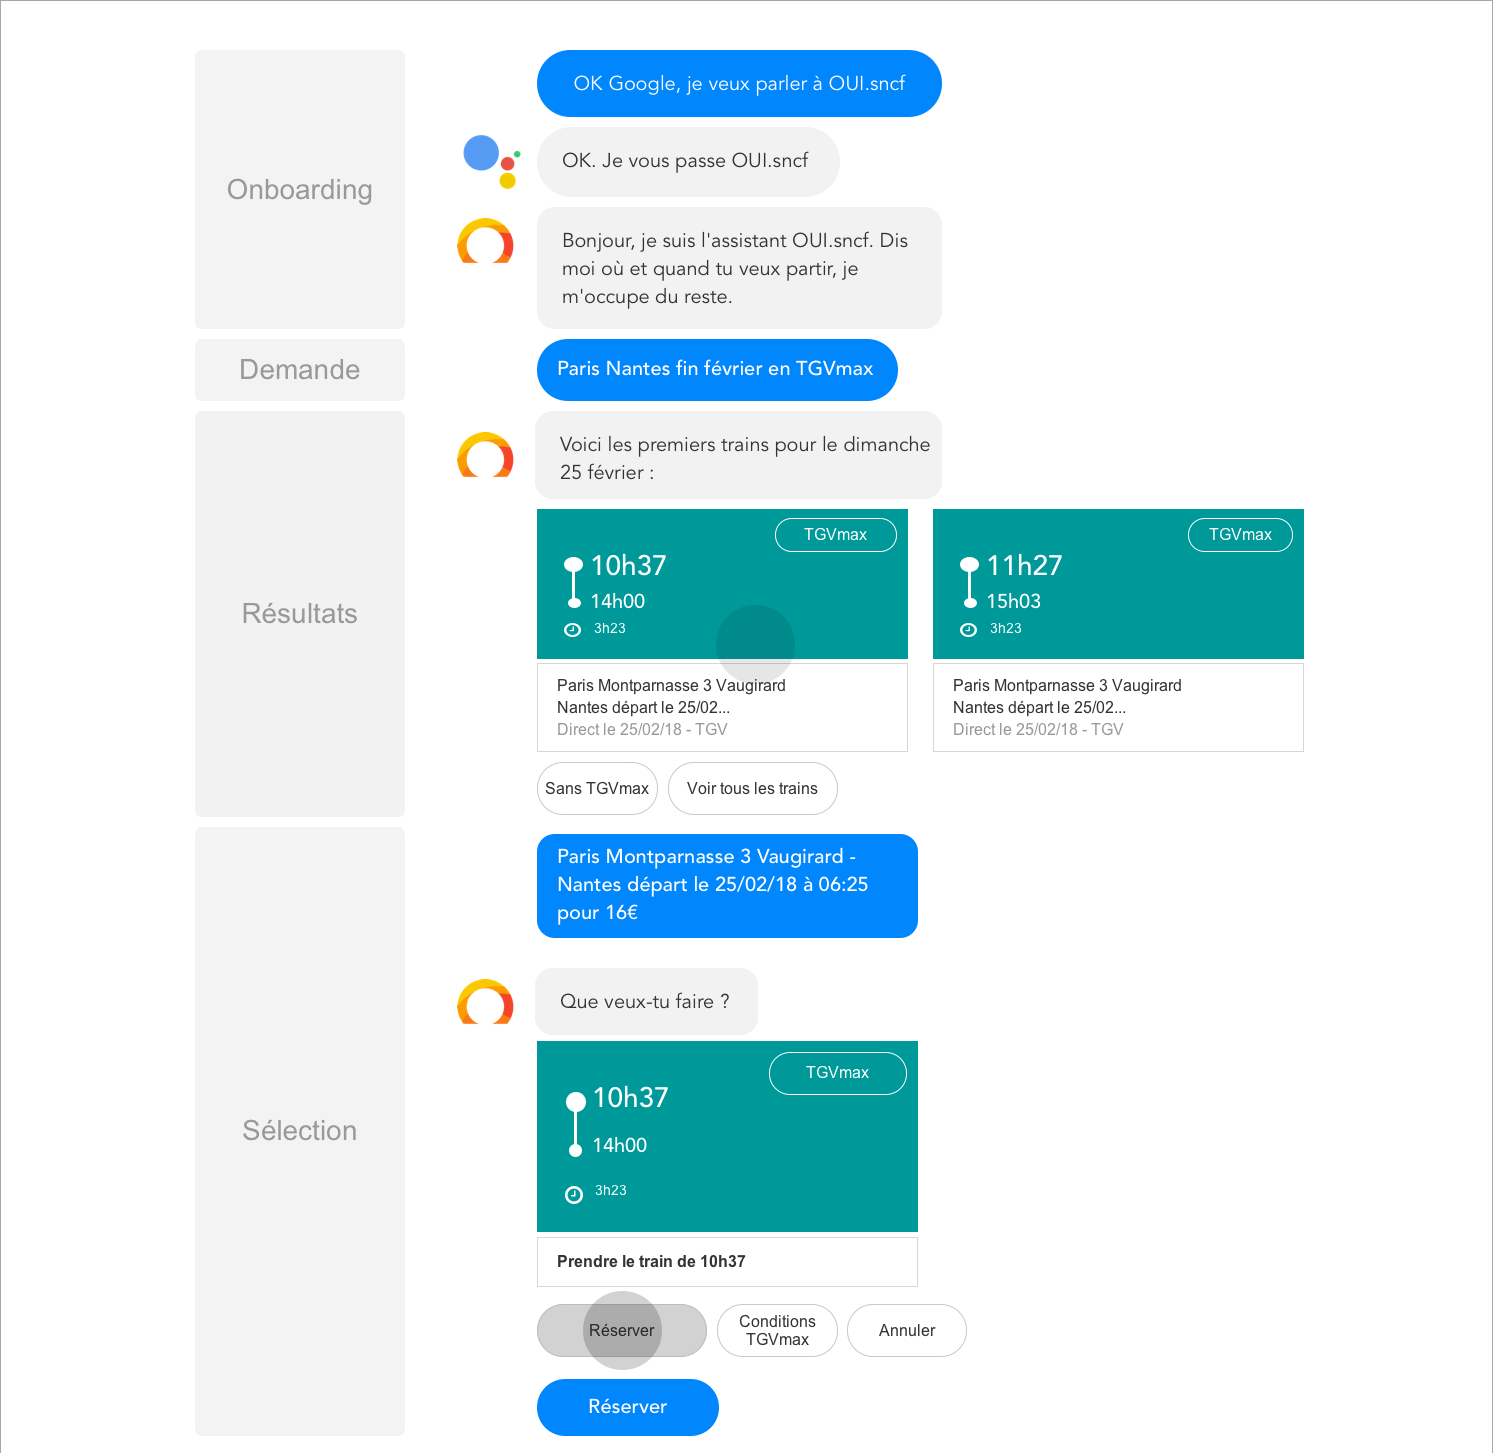 Conversational interface for chatbot & voicebot: the French touch